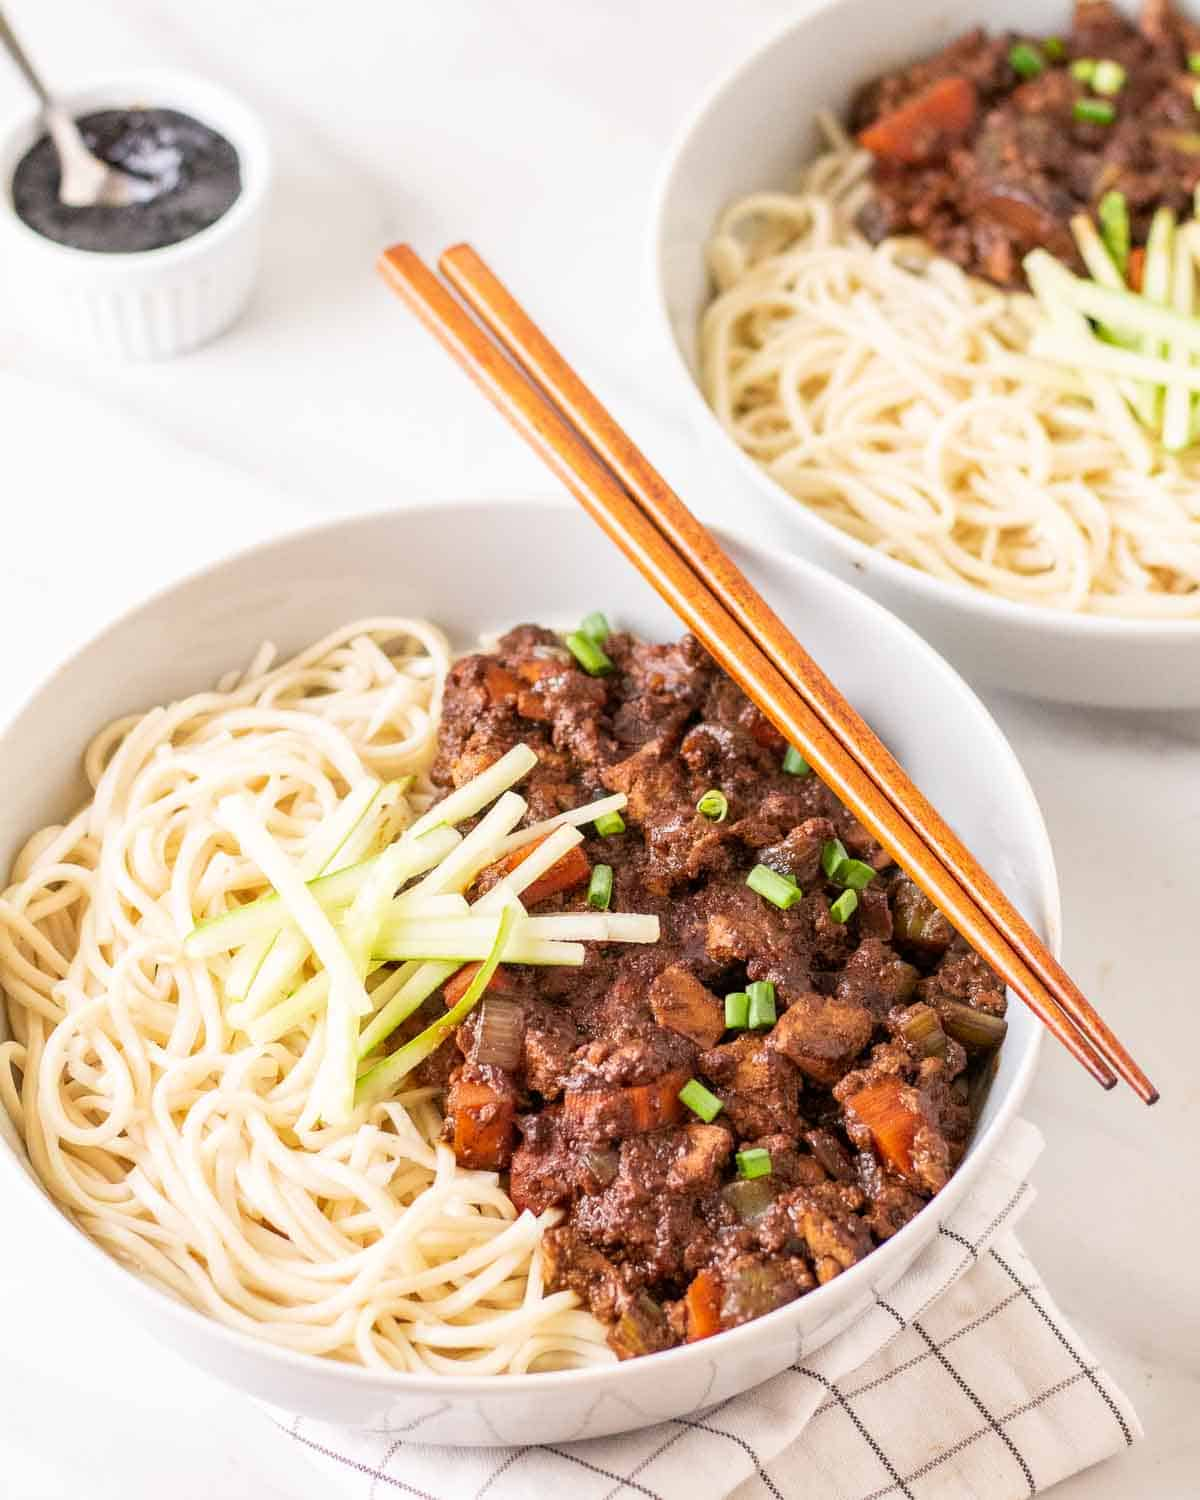 A bowl of vegan jajangmyeon with chopsticks. There is another bowl of noodles and black bean sauce behind.